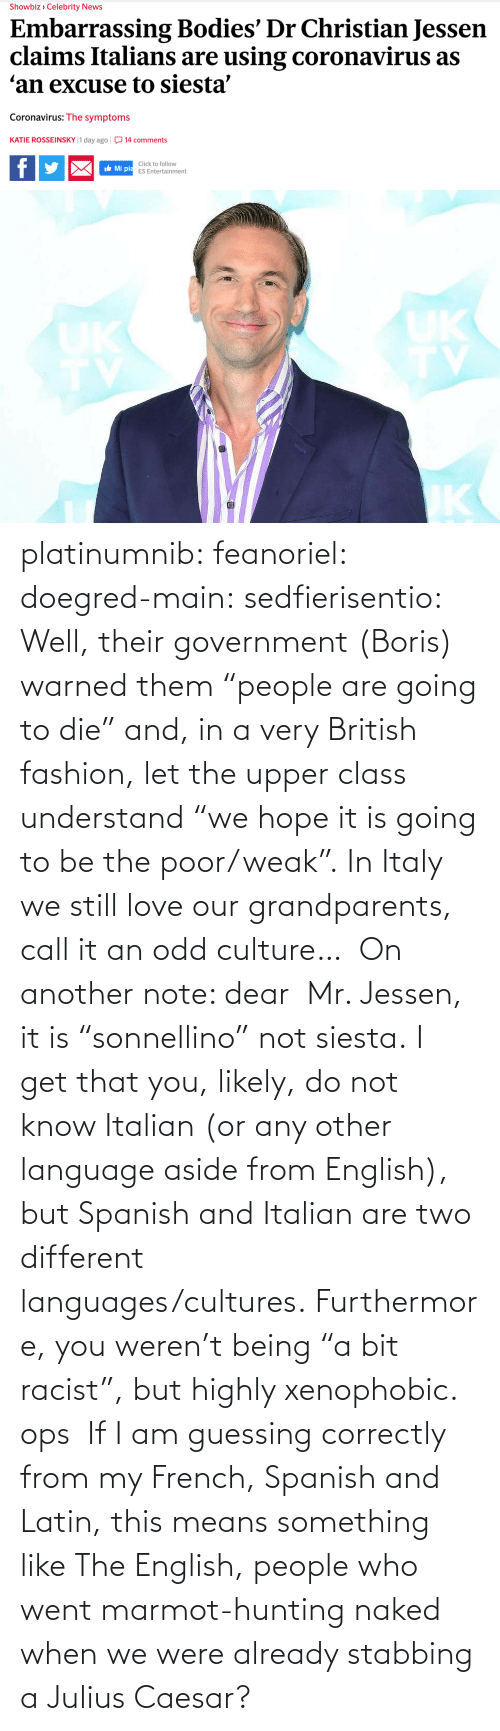 "Racist: platinumnib:  feanoriel: doegred-main:  sedfierisentio:  Well, their government (Boris) warned them ""people are going to die"" and, in a very British fashion, let the upper class understand ""we hope it is going to be the poor/weak"". In Italy we still love our grandparents, call it an odd culture…  On another note: dear  Mr. Jessen, it is ""sonnellino"" not siesta. I get that you, likely, do not know Italian (or any other language aside from English), but Spanish and Italian are two different languages/cultures. Furthermore, you weren't being ""a bit racist"", but highly xenophobic.   ops   If I am guessing correctly from my French, Spanish and Latin, this means something like The English, people who went marmot-hunting naked when we were already stabbing a Julius Caesar?"